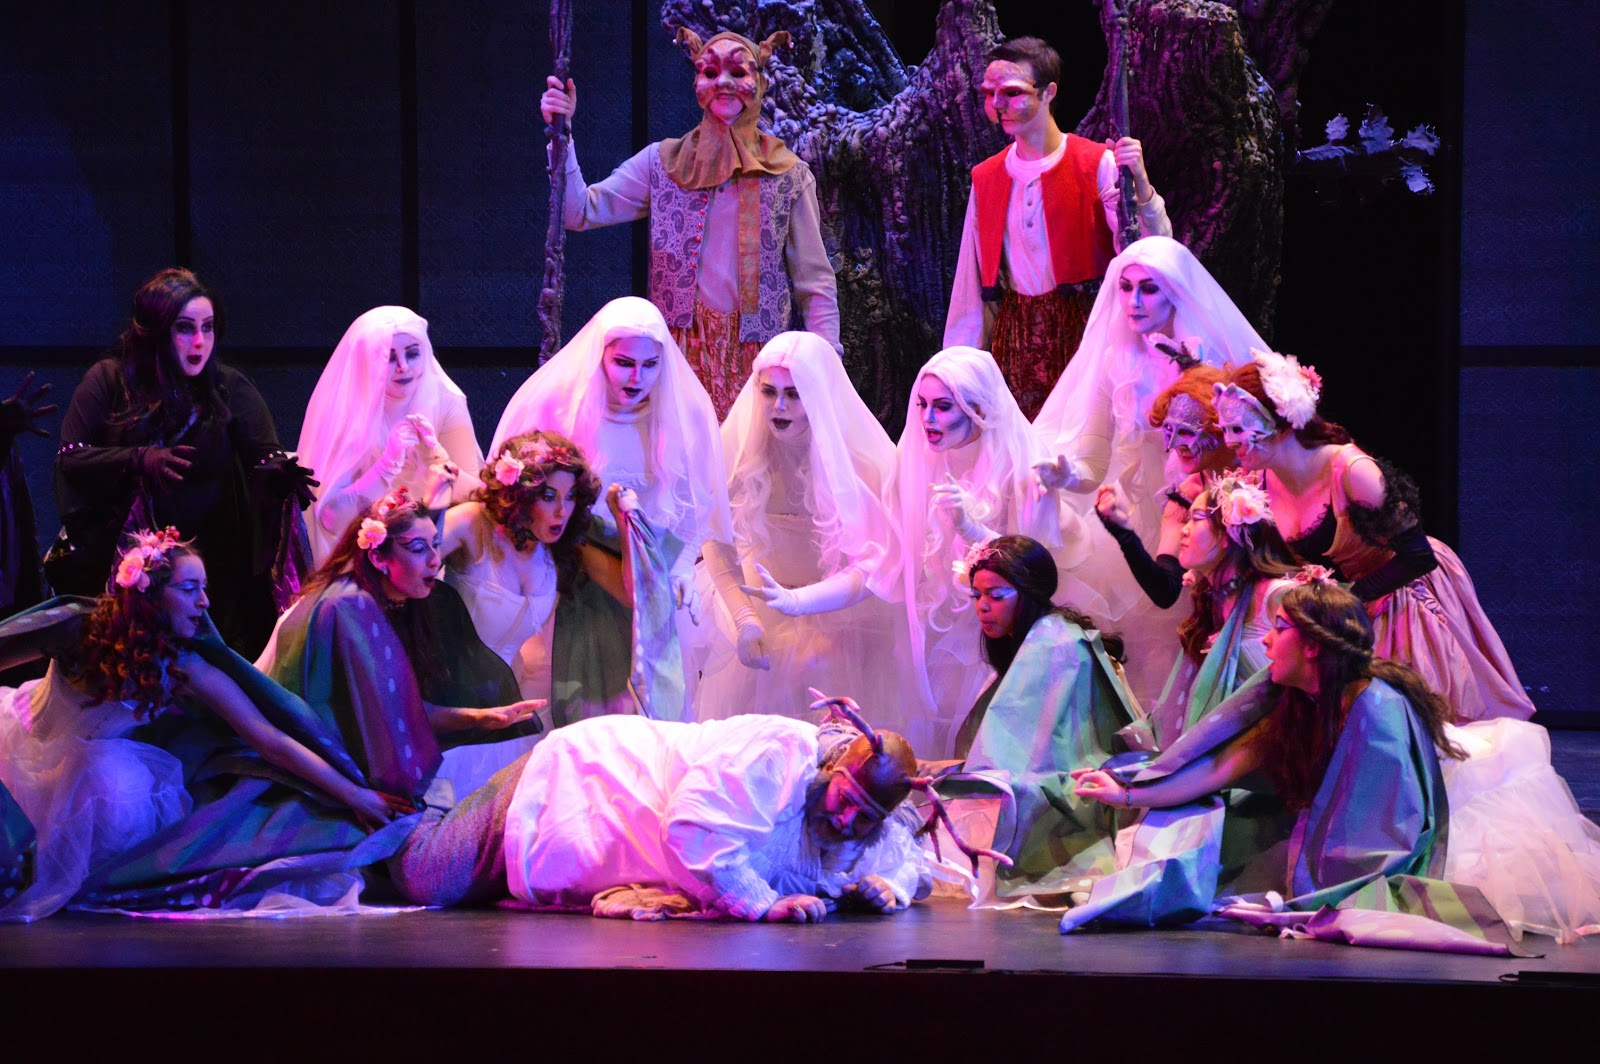 IN REVIEW: the cast of UNCG Opera Theatre's April 2019 production of Giuseppe Verdi's FALSTAFF [Photograph by Tamara Beliy and Amber Rose Romero]